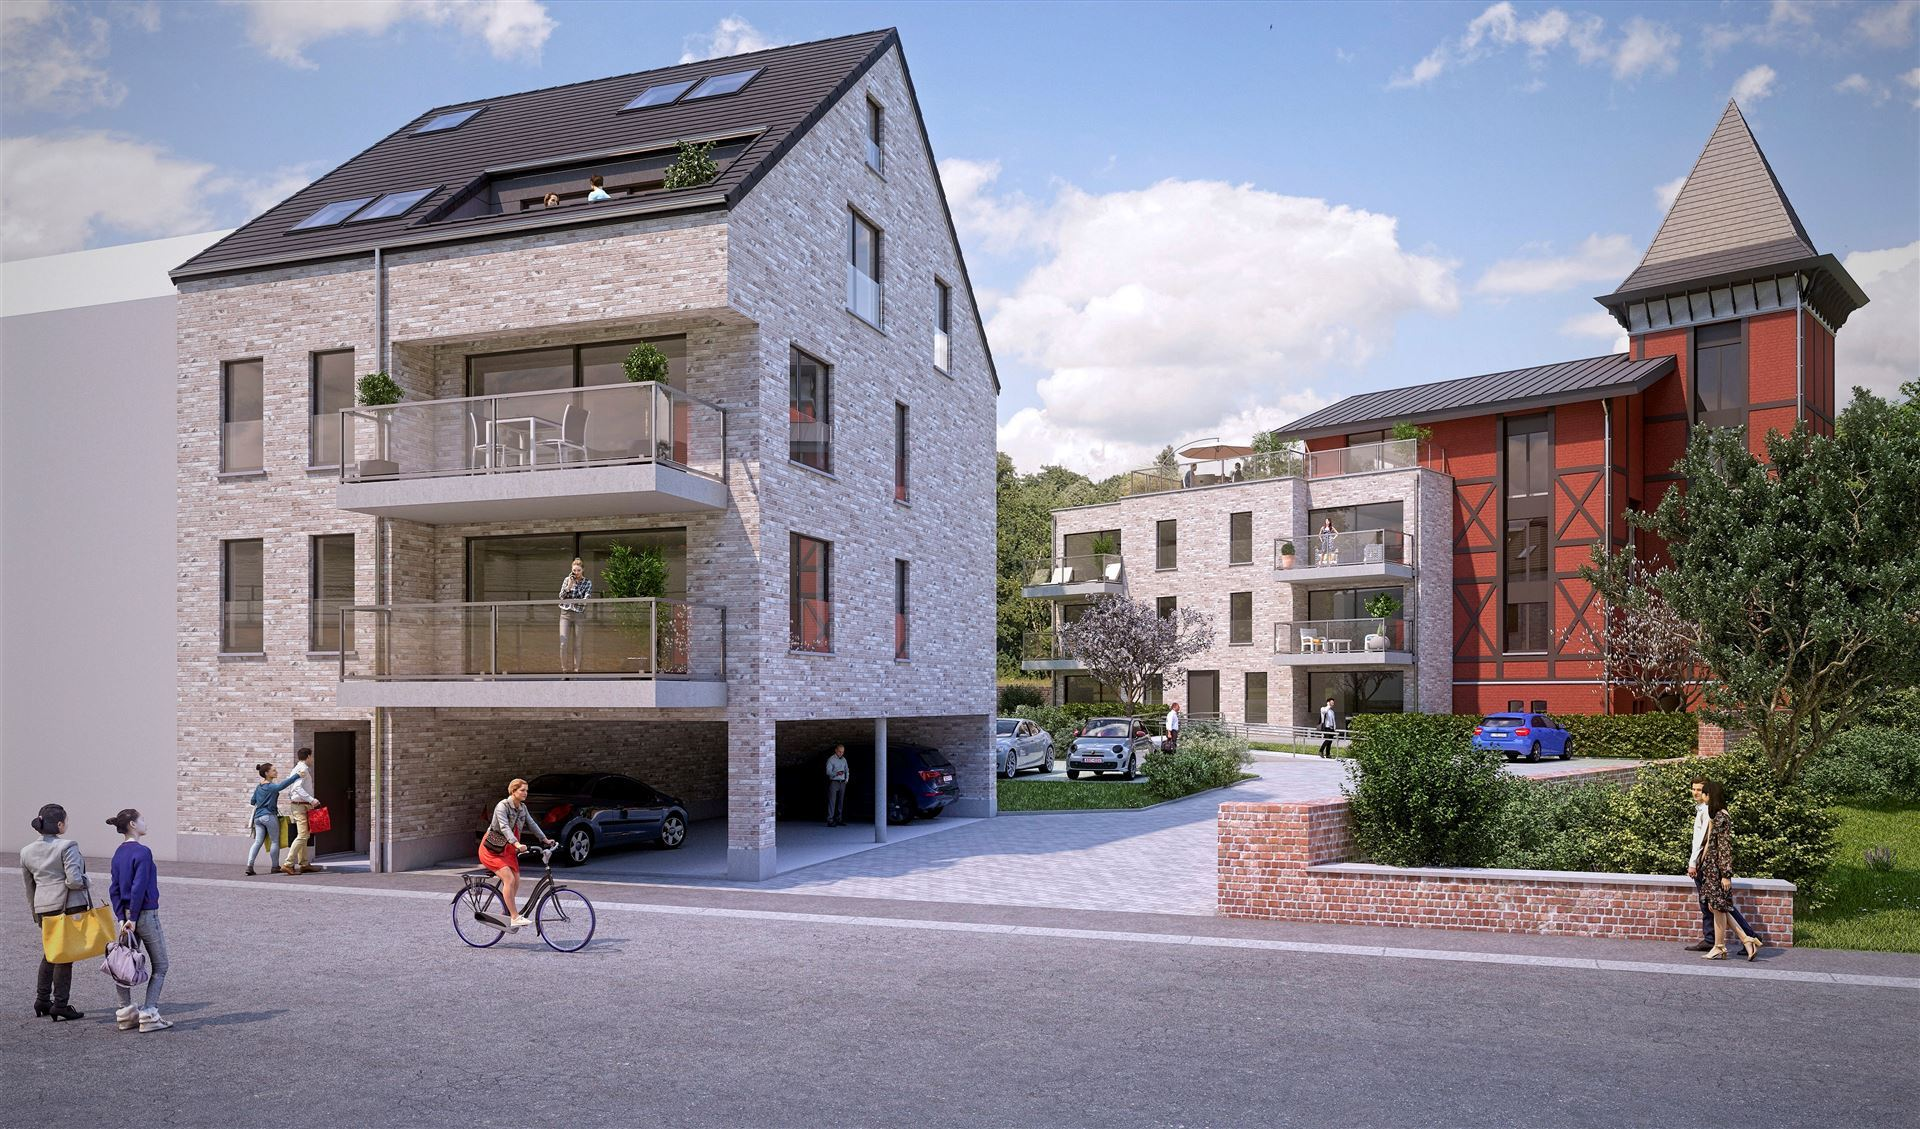 RESIDENCE LES FIGUIERS - COMPIEGNE HUY - 4500 HUY